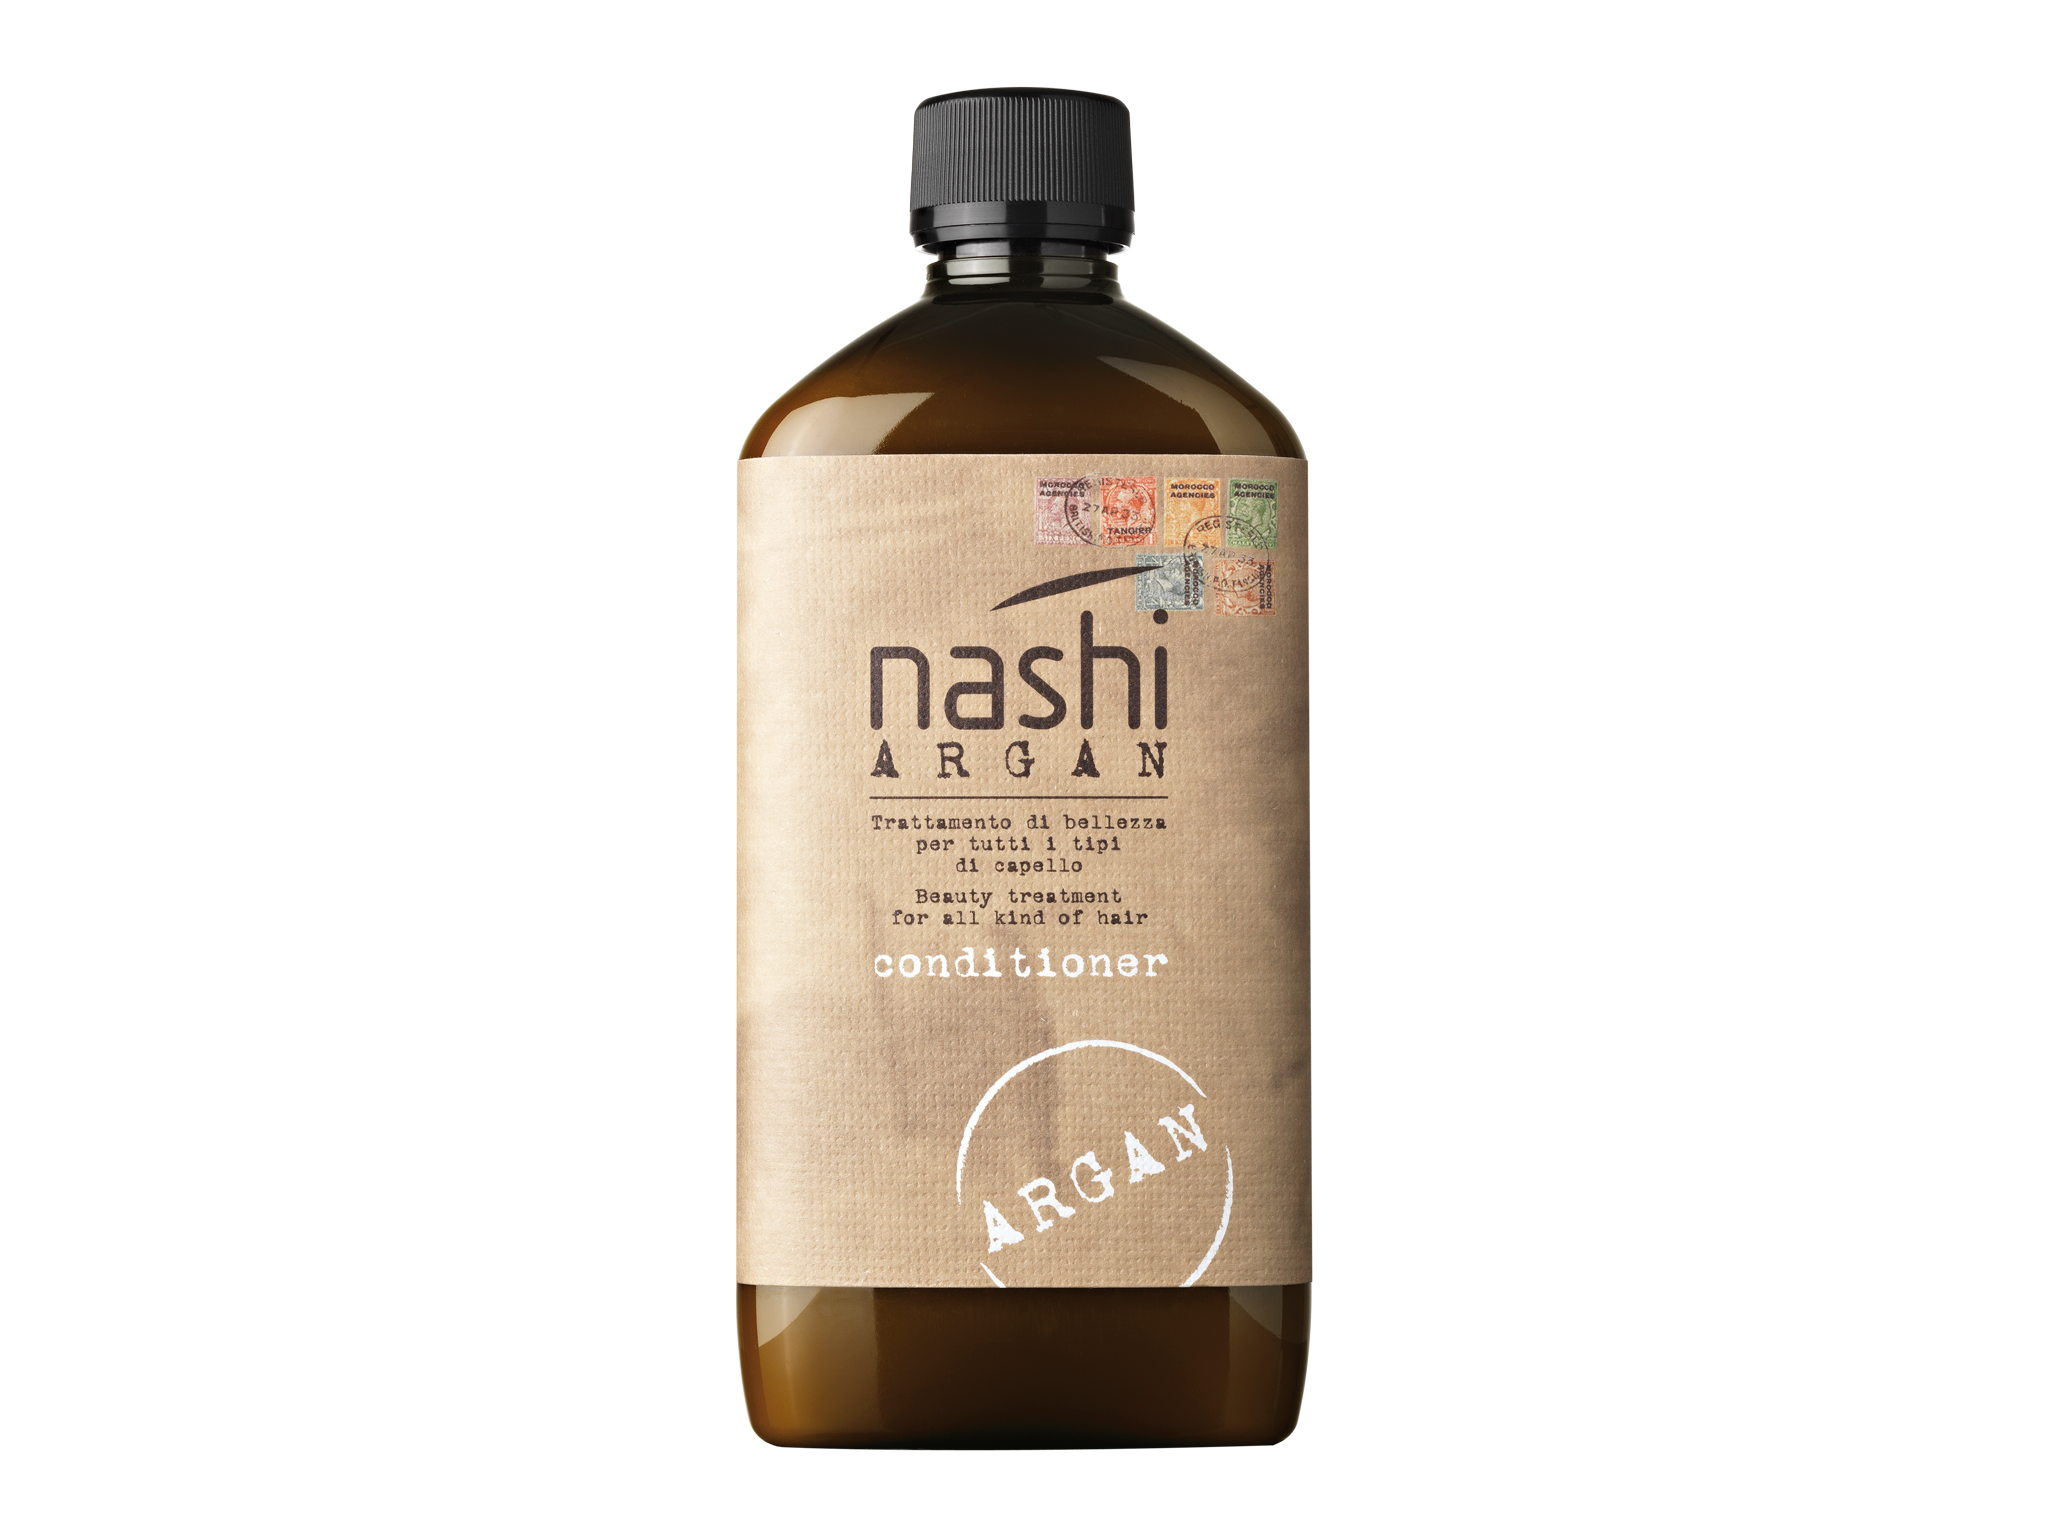 Conditioner by Nashi Argan